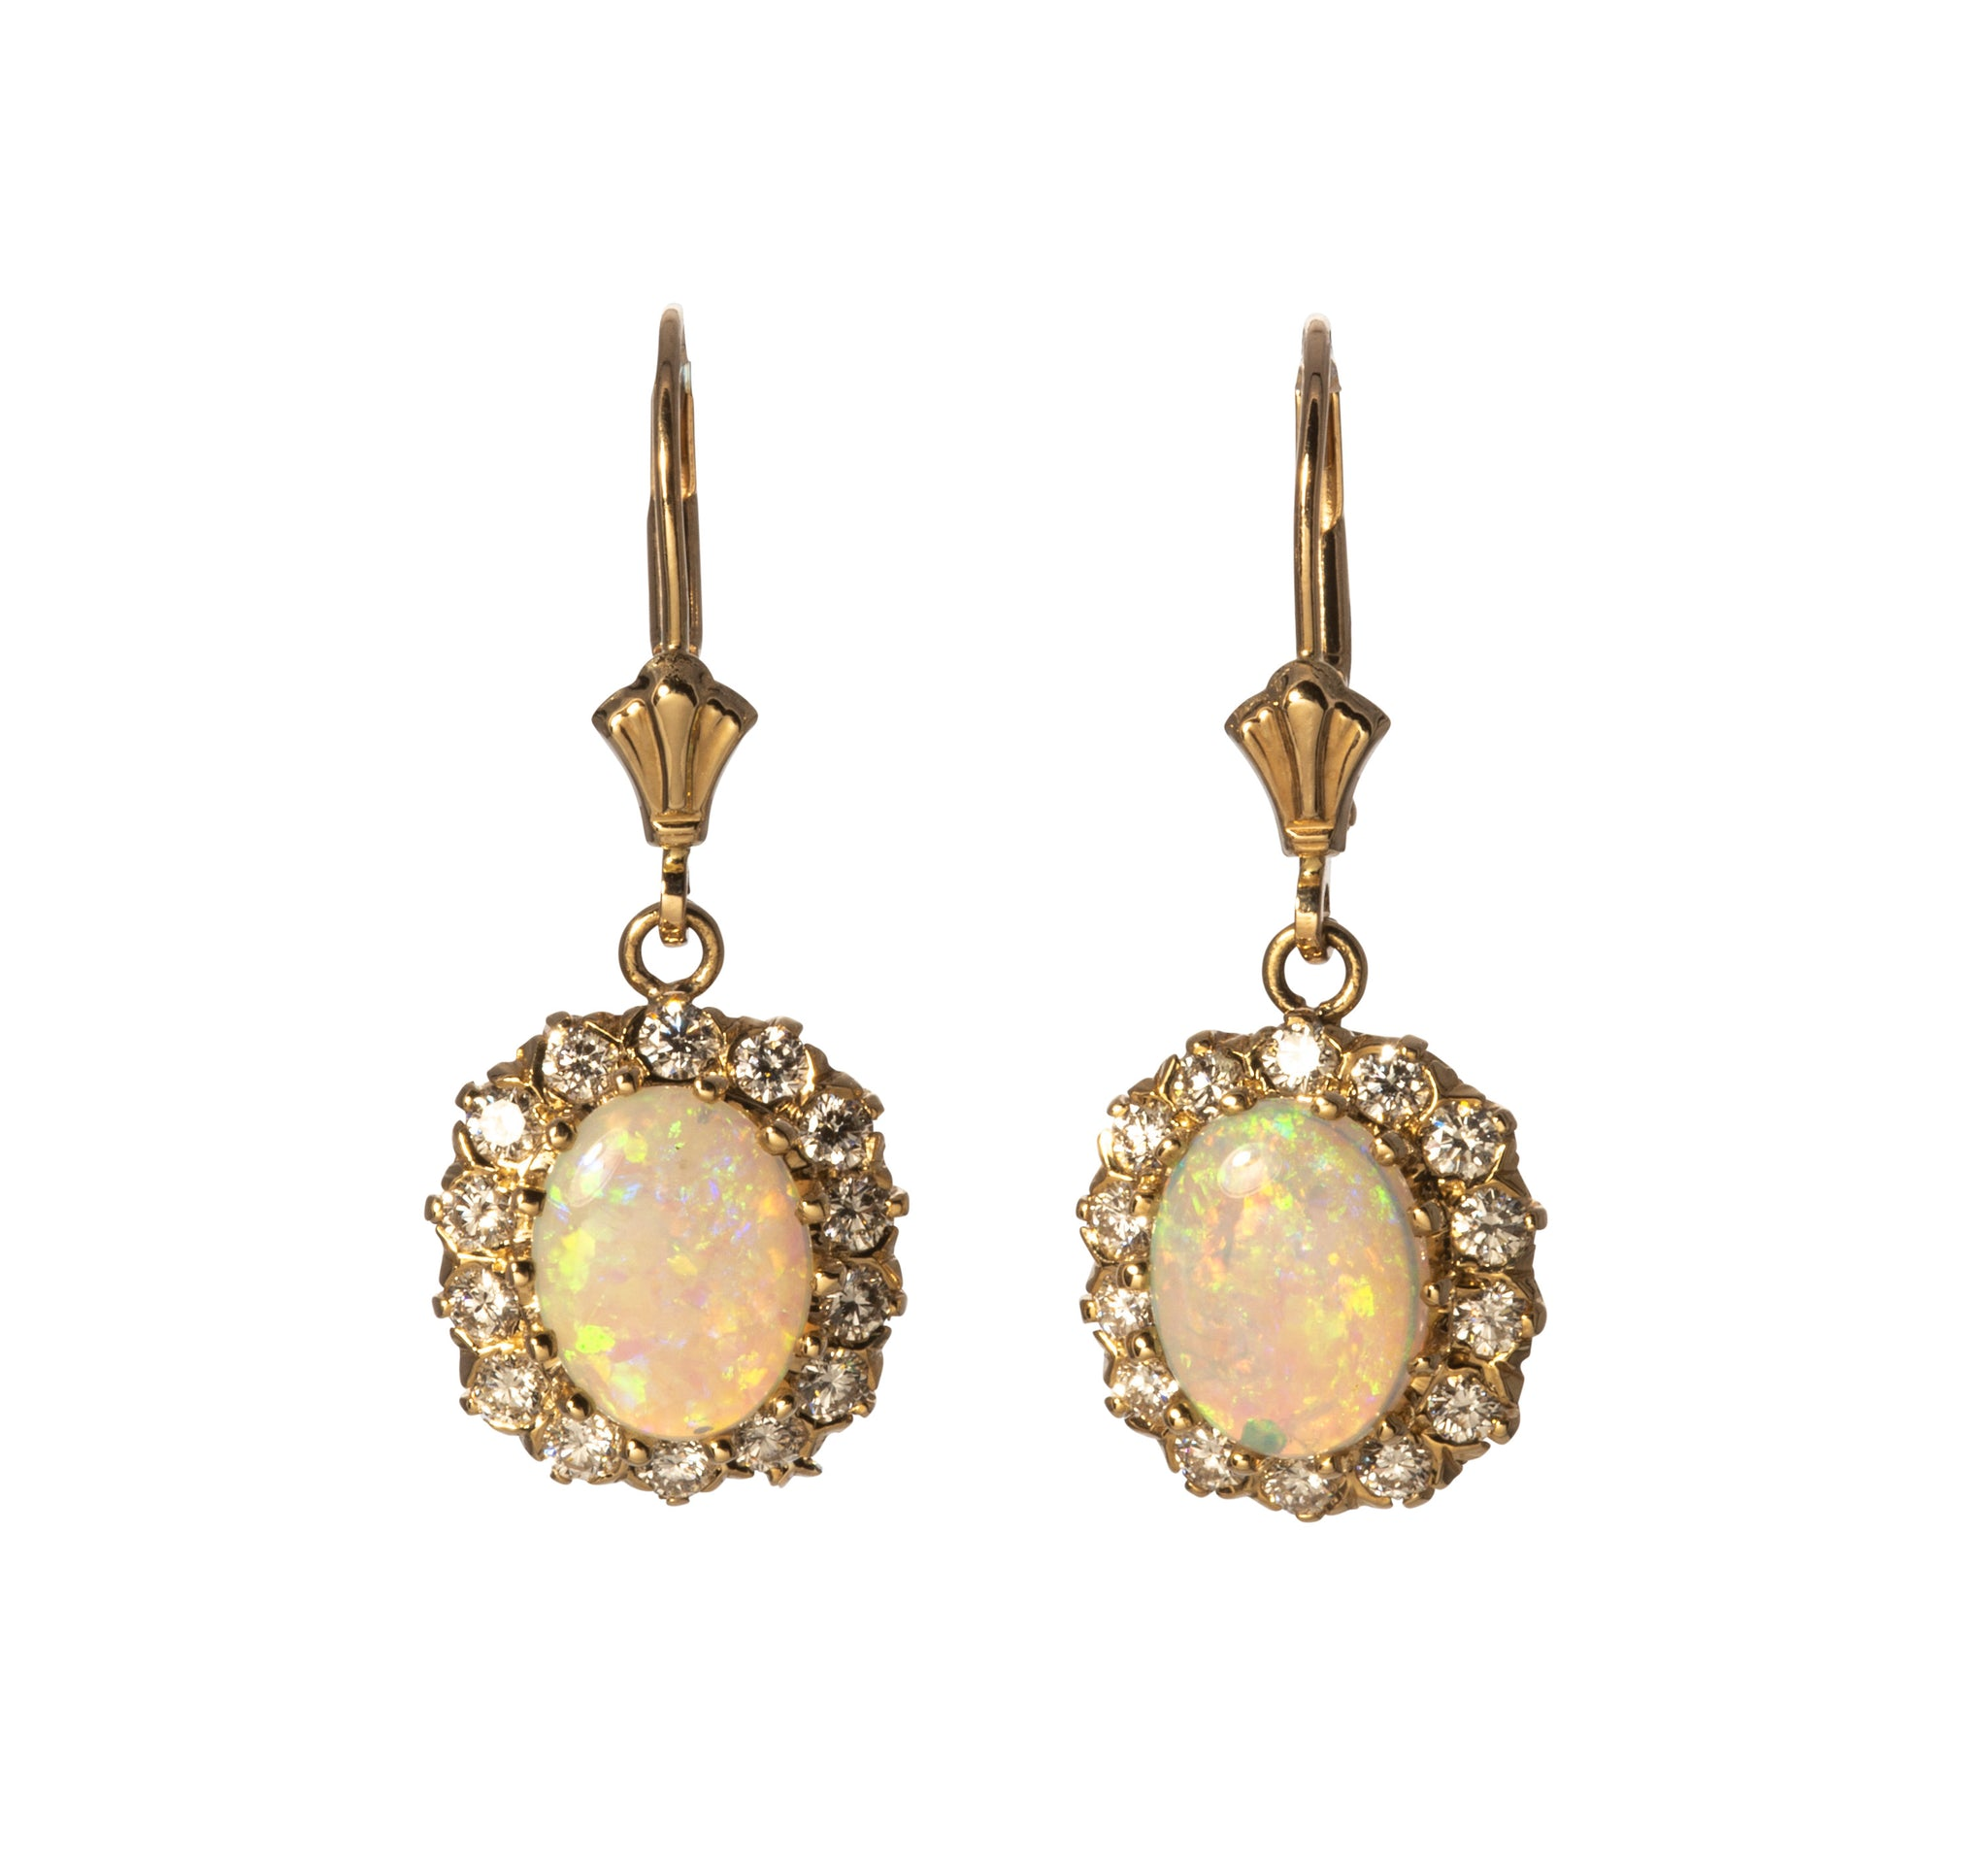 Opal Cabochon, Diamond & 14K Gold Drop Earrings